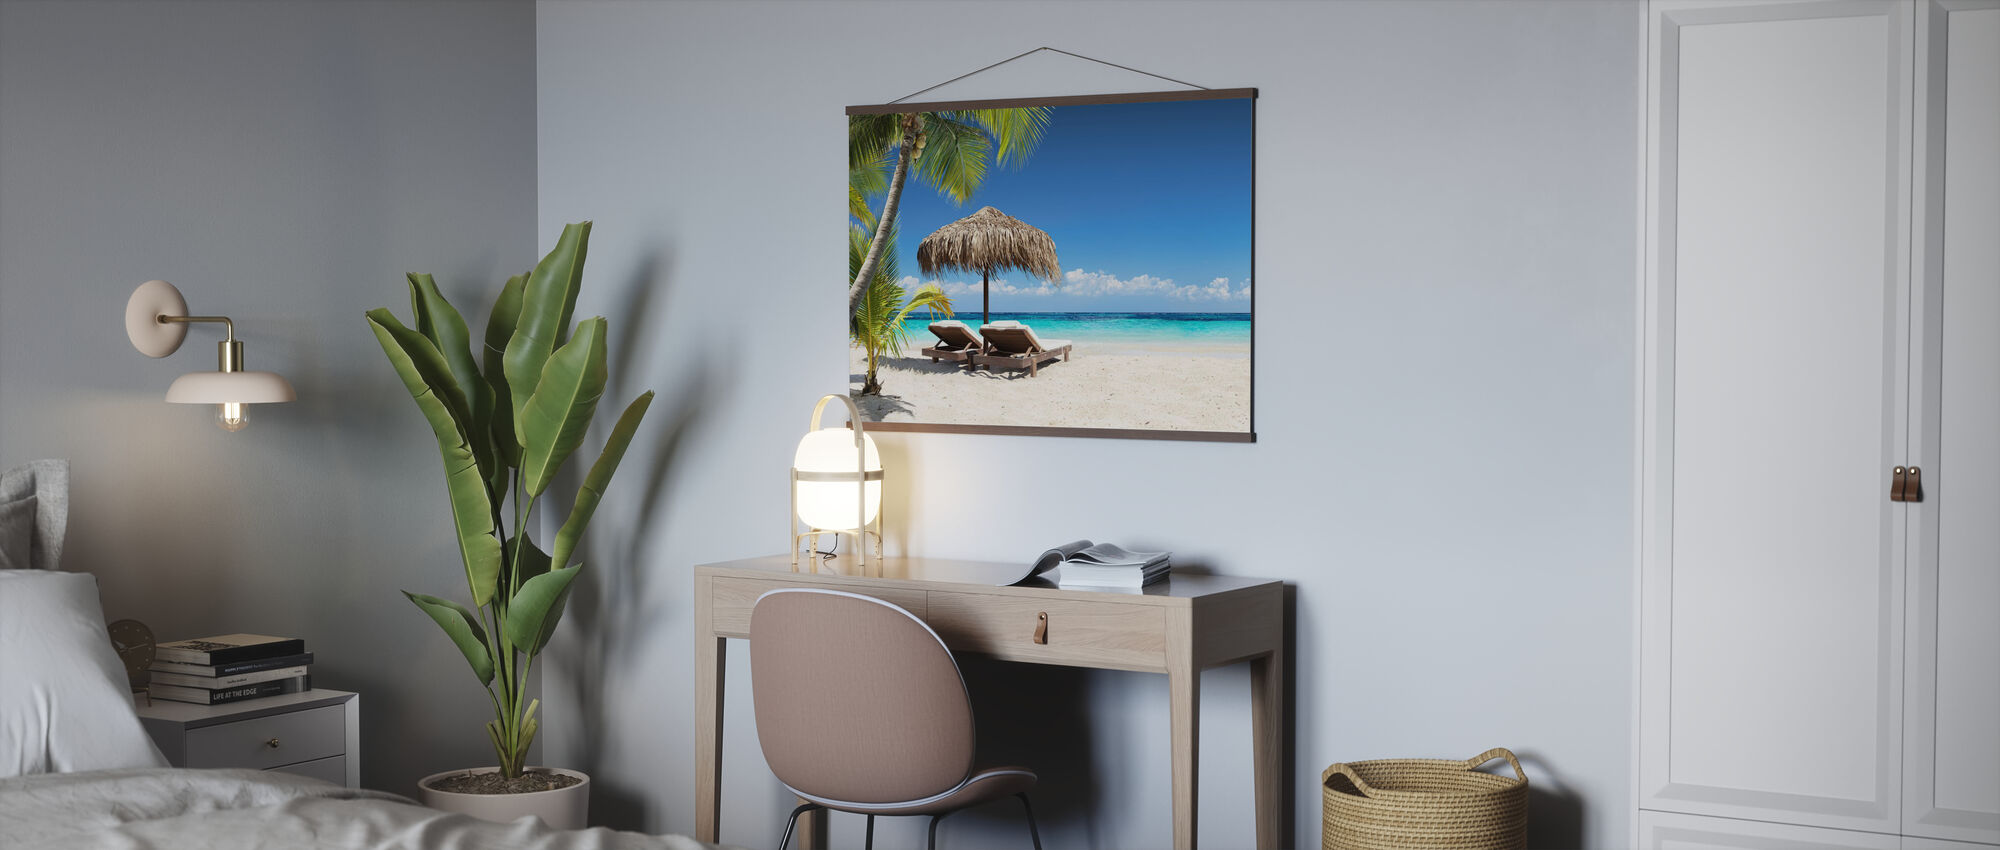 Coral Beach - Poster - Office